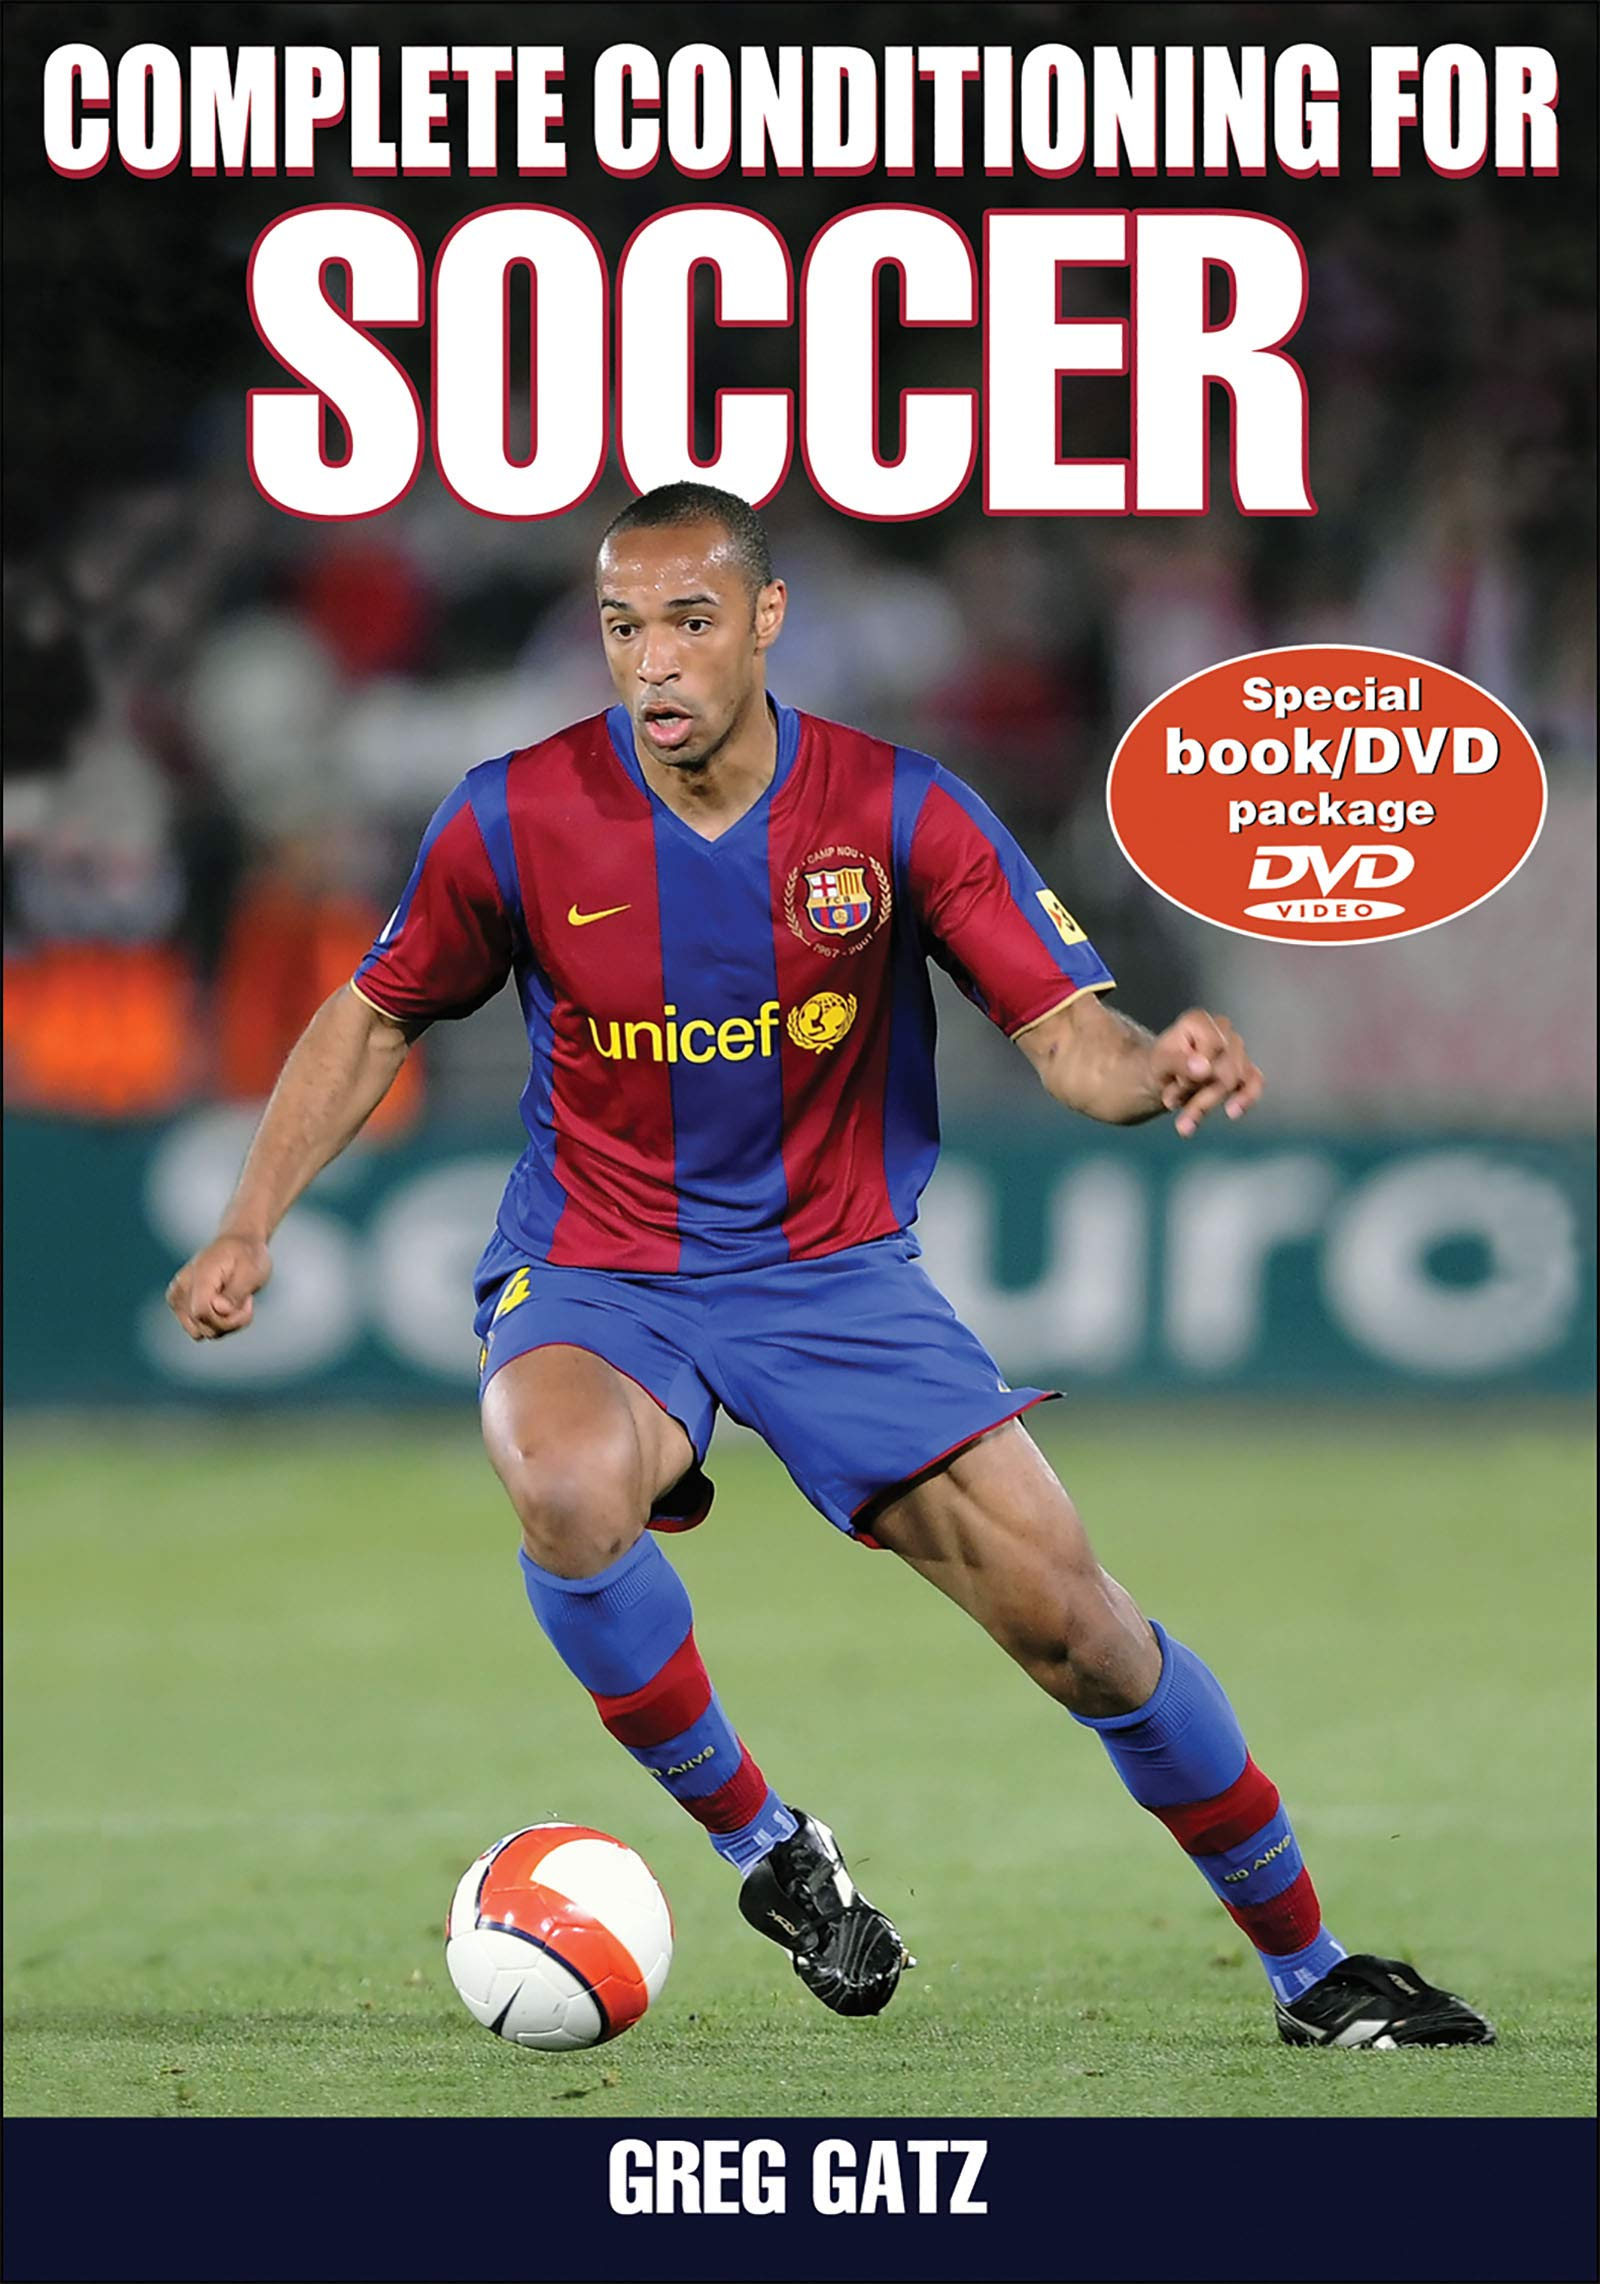 Complete Conditioning for Soccer (Complete Conditioning for Sports) pdf